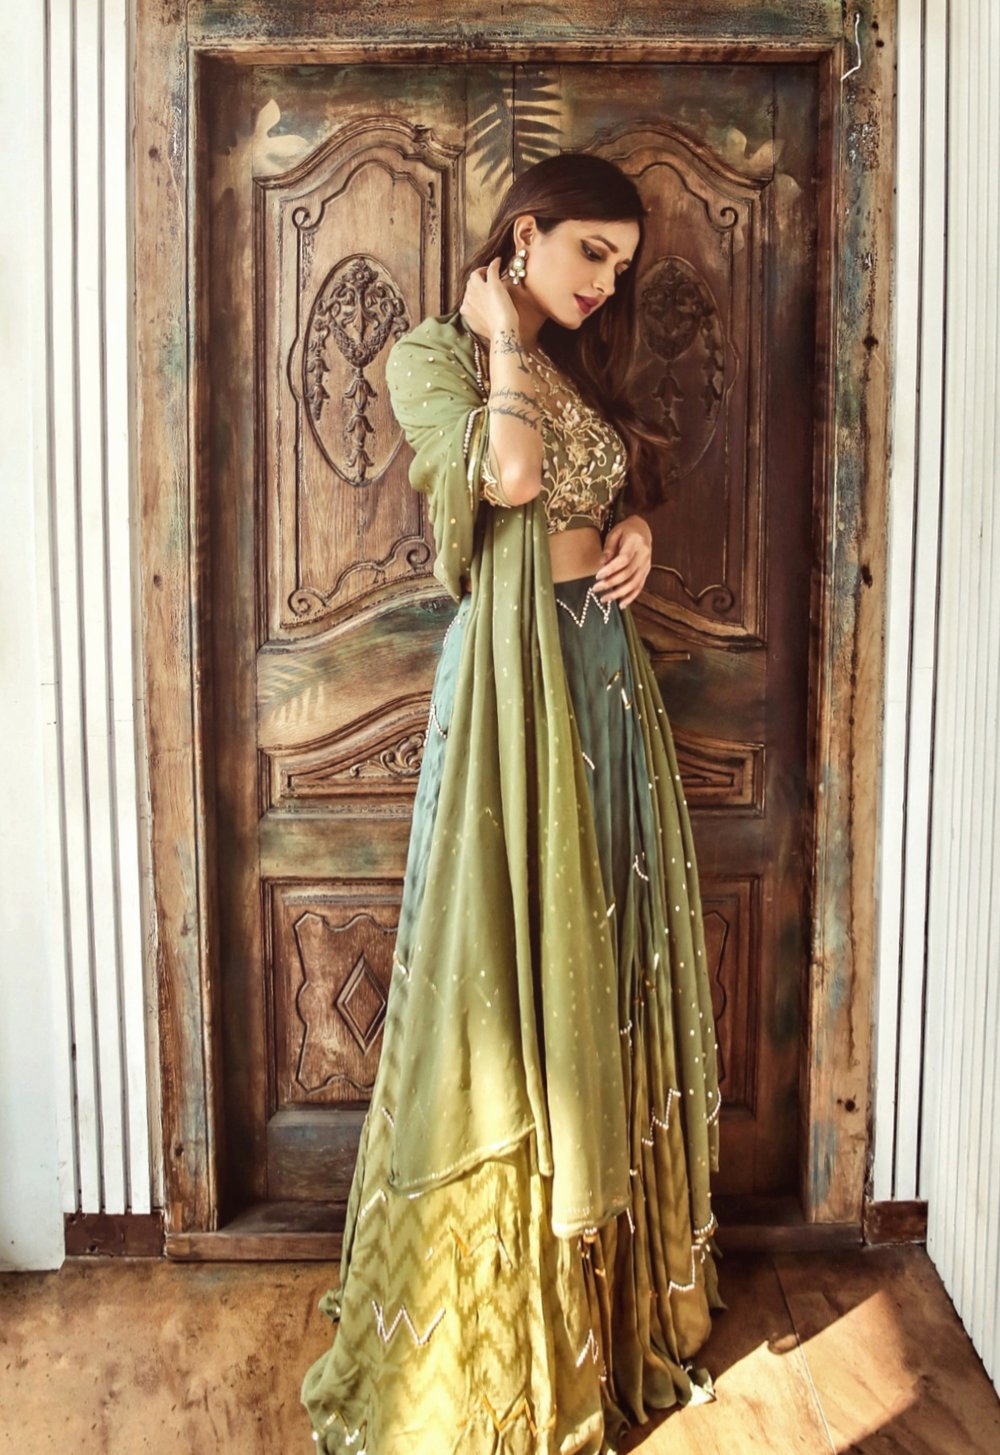 The-Chic-Armoire-by-Nidhi-Kunder-Ohaila-Khan-3